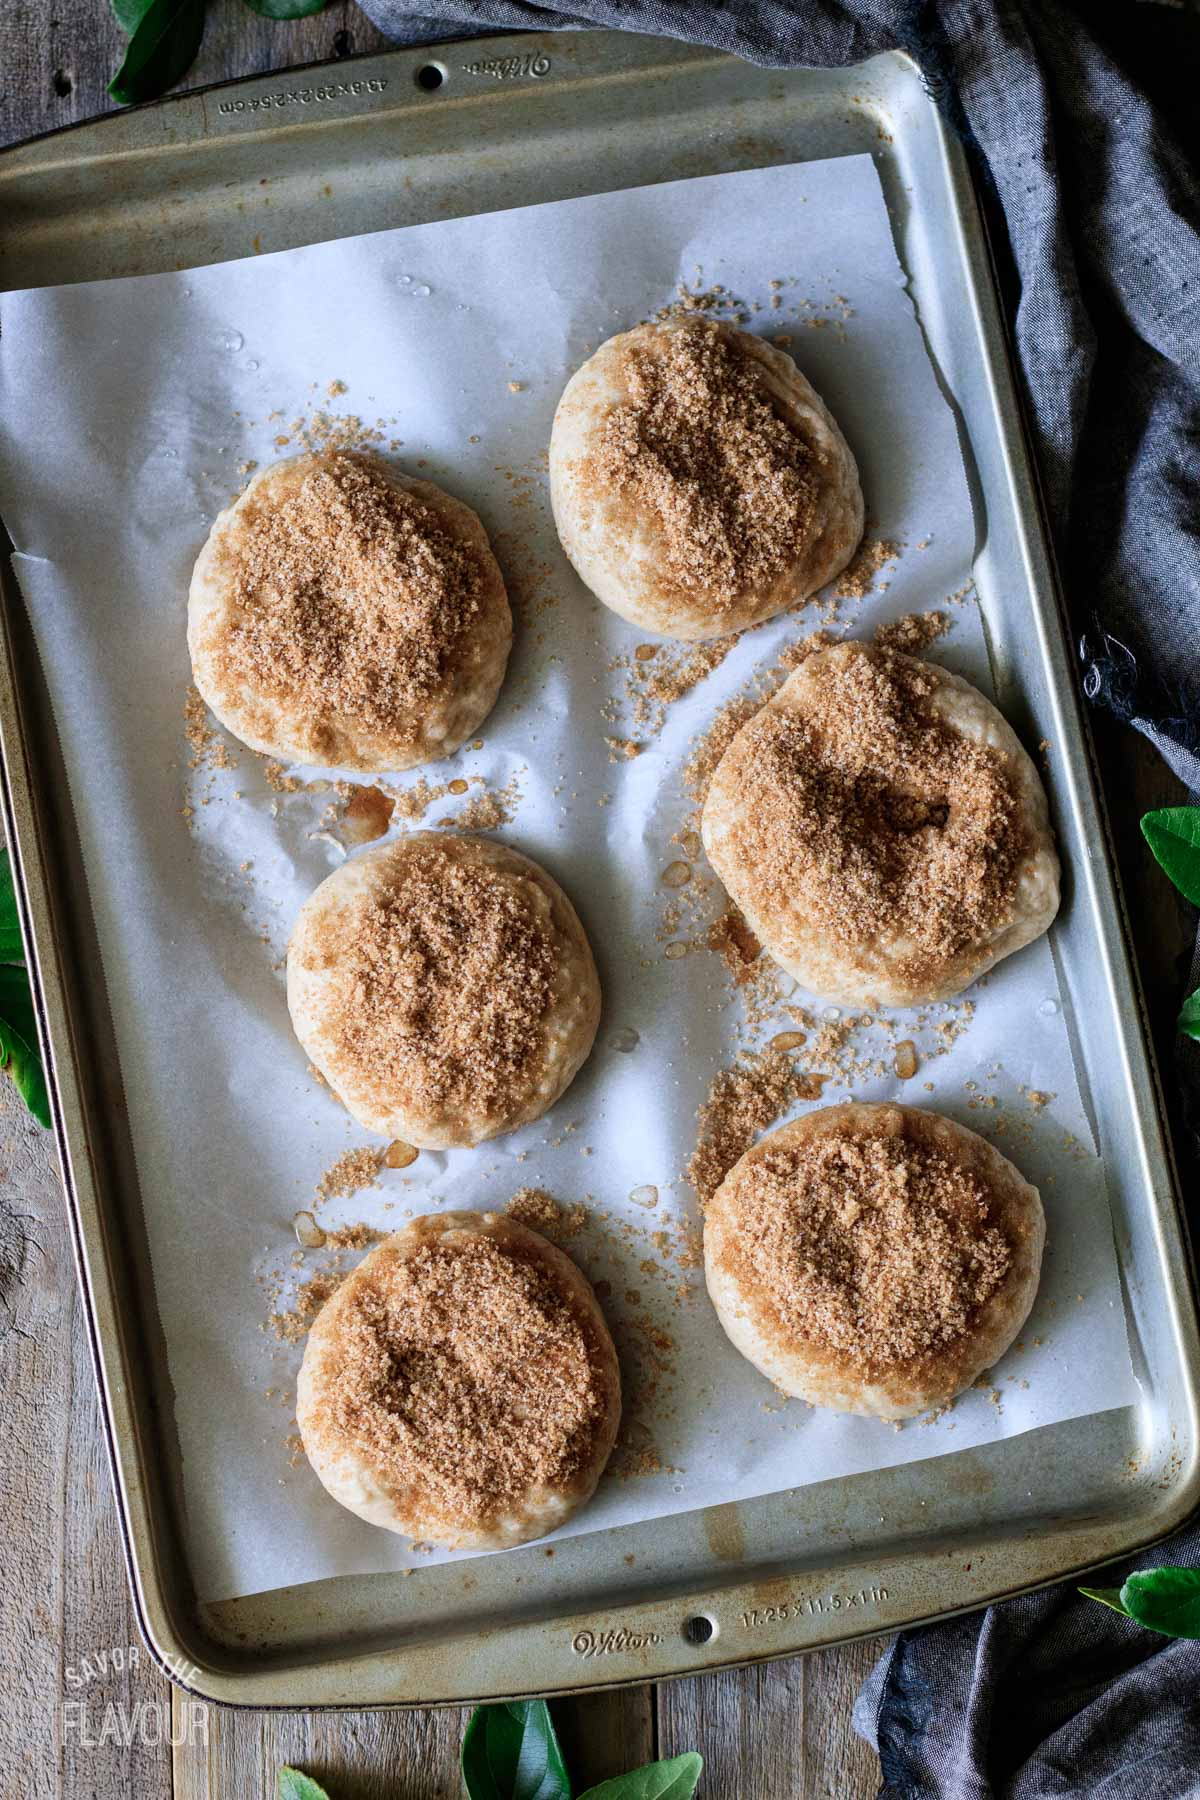 poached bagels sprinkled with the cinnamon topping